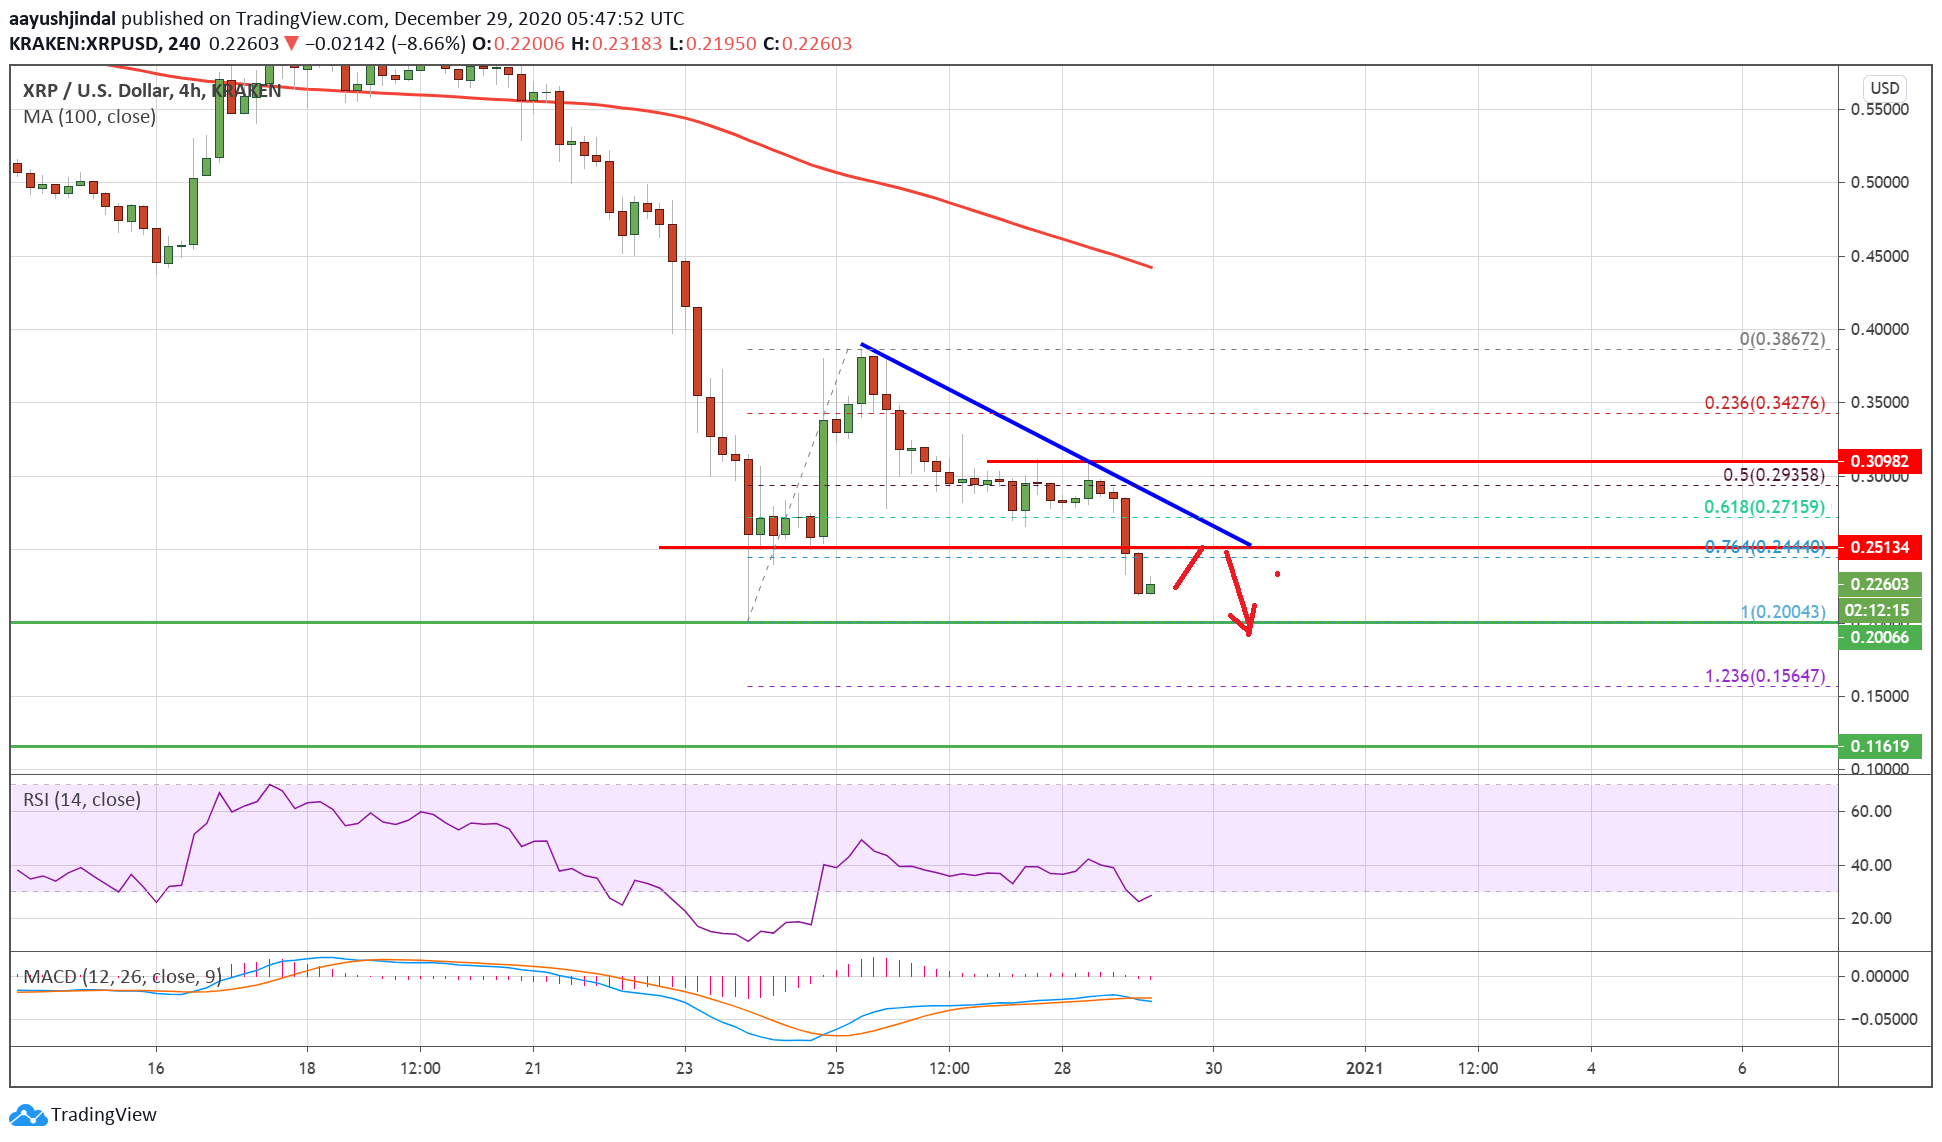 Charted: Ripple (XRP) Tumbles 20%, Why It Could Test $0.20